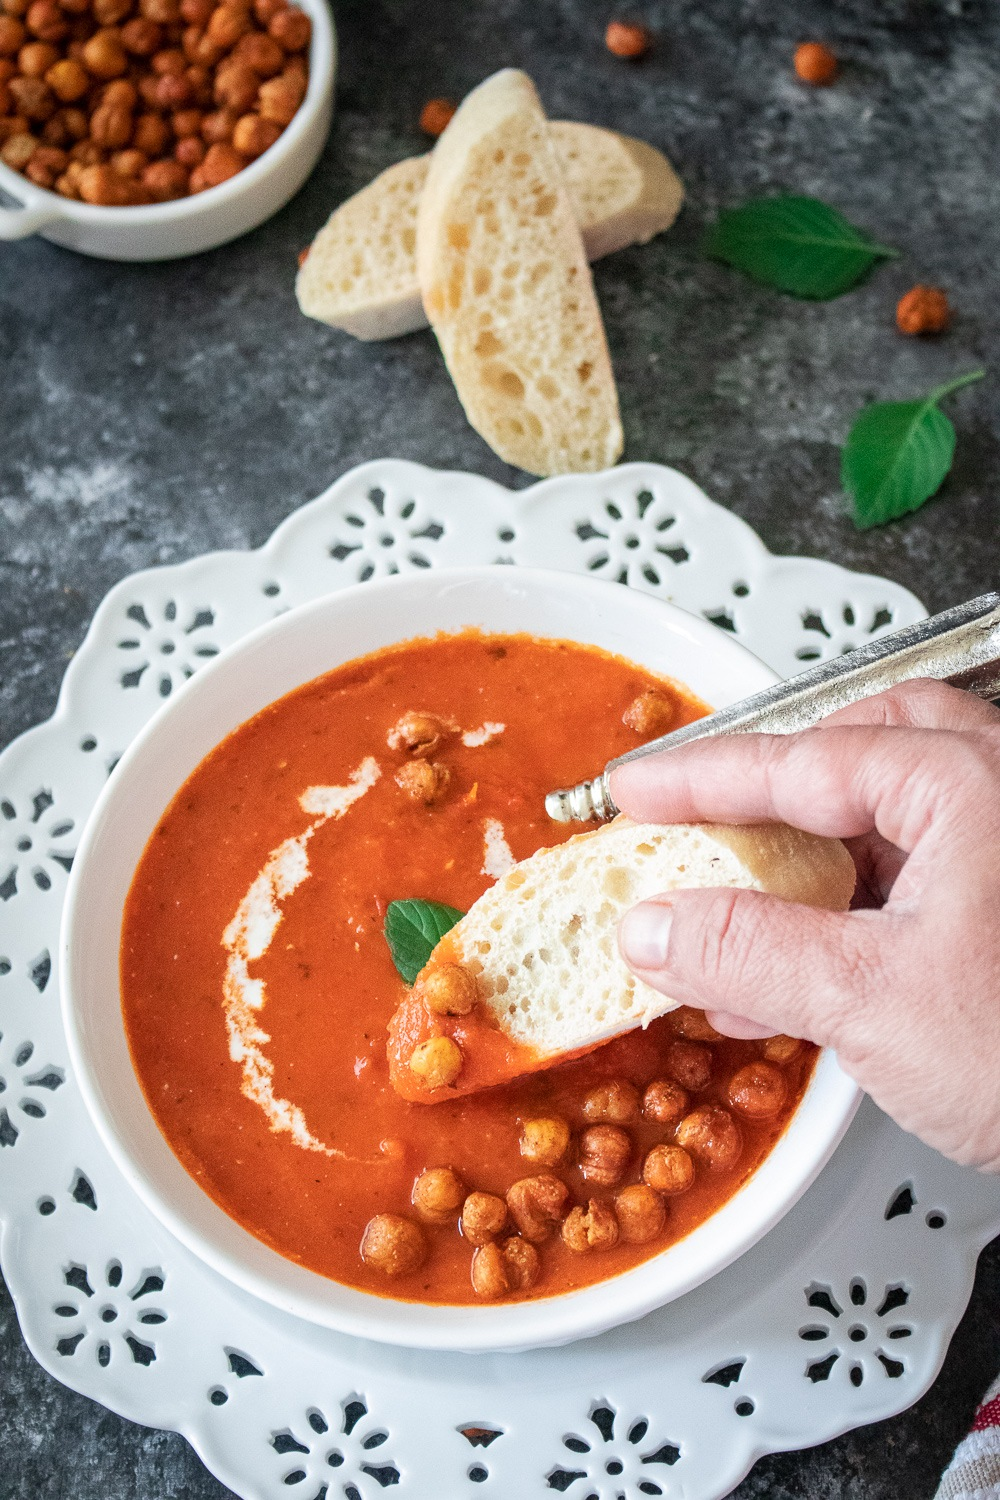 Eat bisque with a bread of your choice